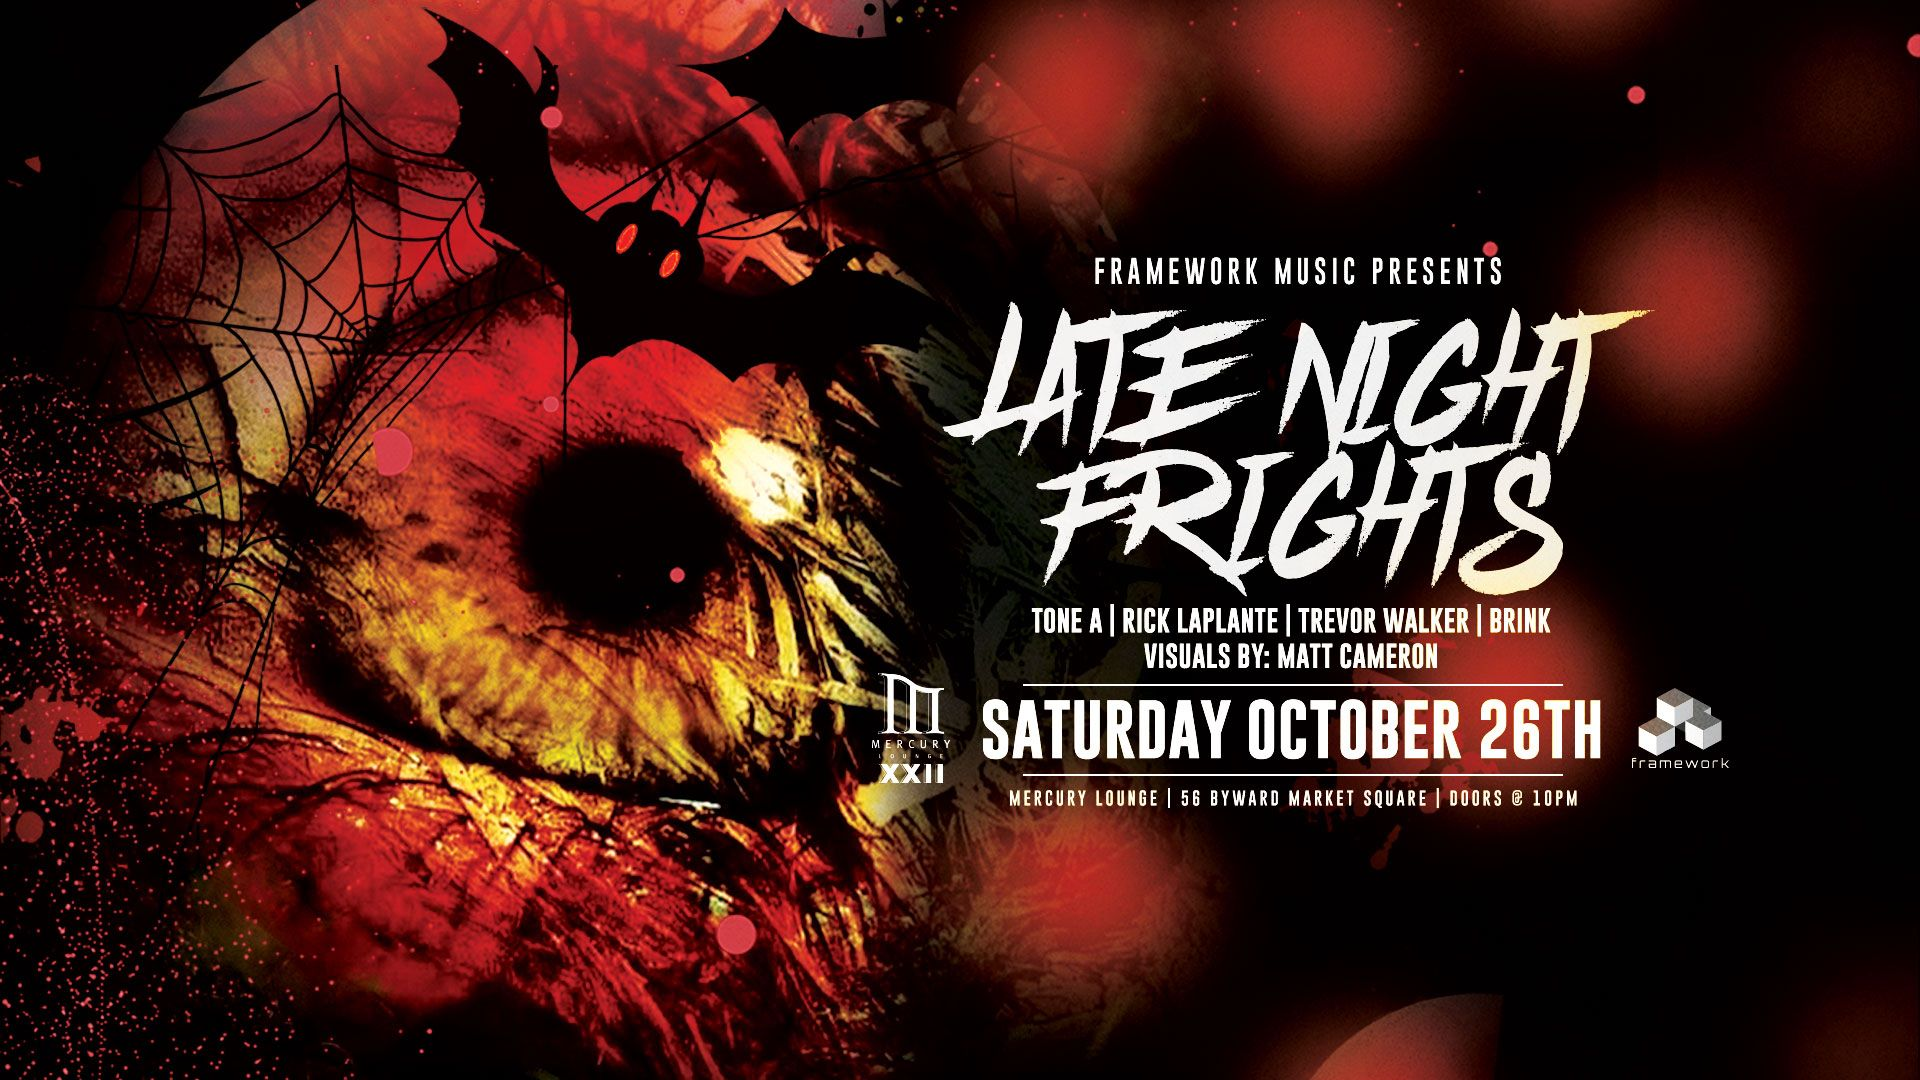 Late Night Frights: Halloween with Framework Music